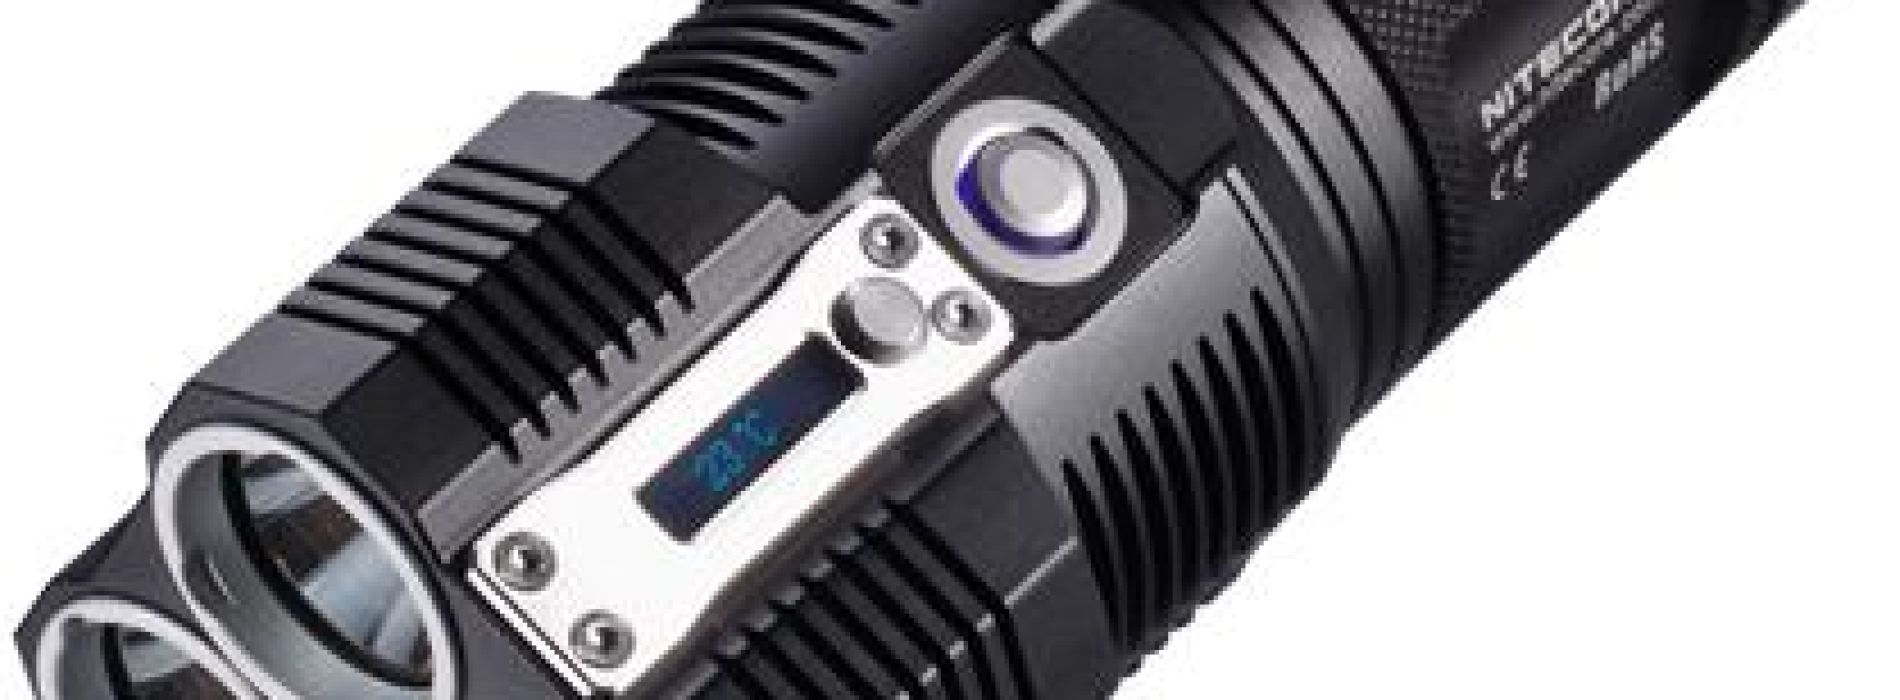 GEAR ENVY: Nitecore TM26 Torch